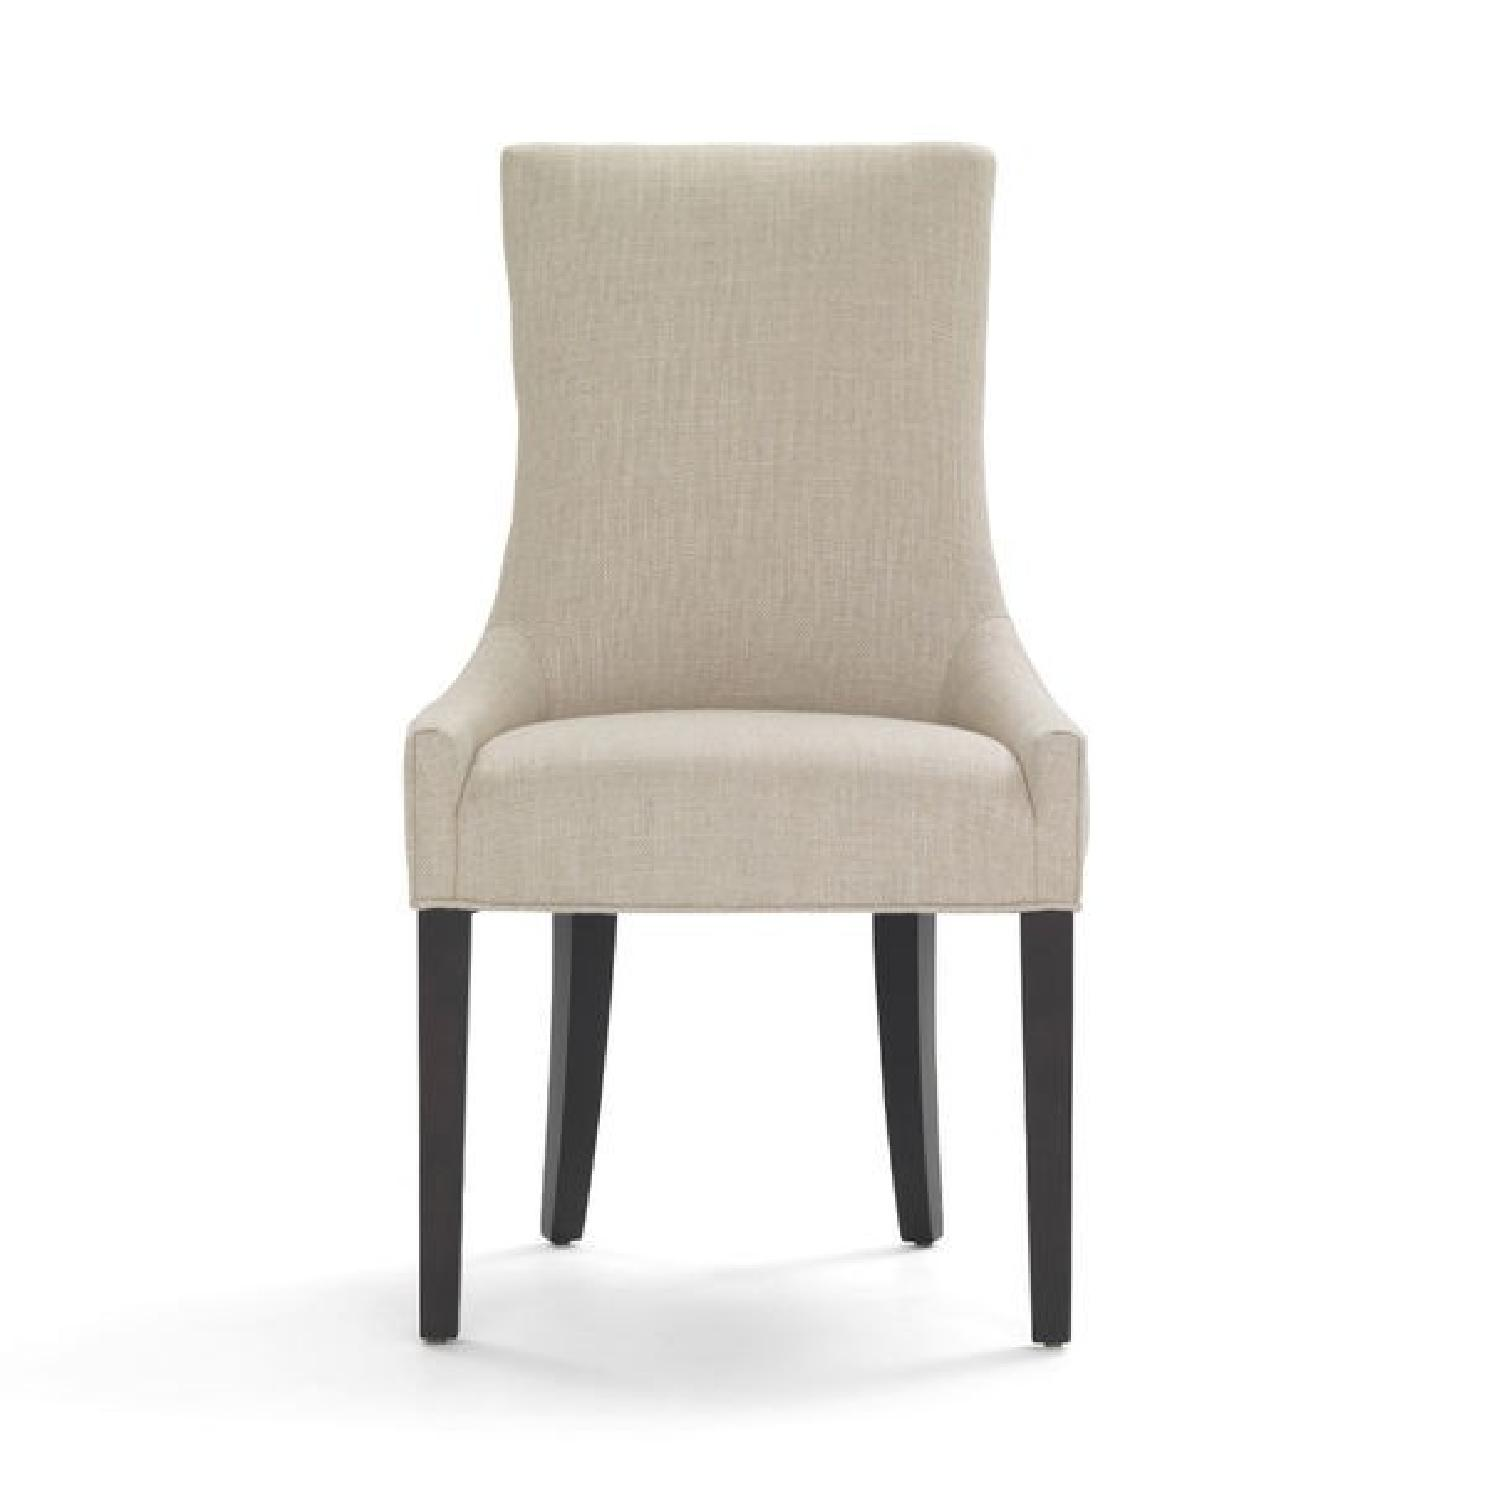 Mitchell Gold + Bob Williams Ada Side Chair in Vivid-Silver